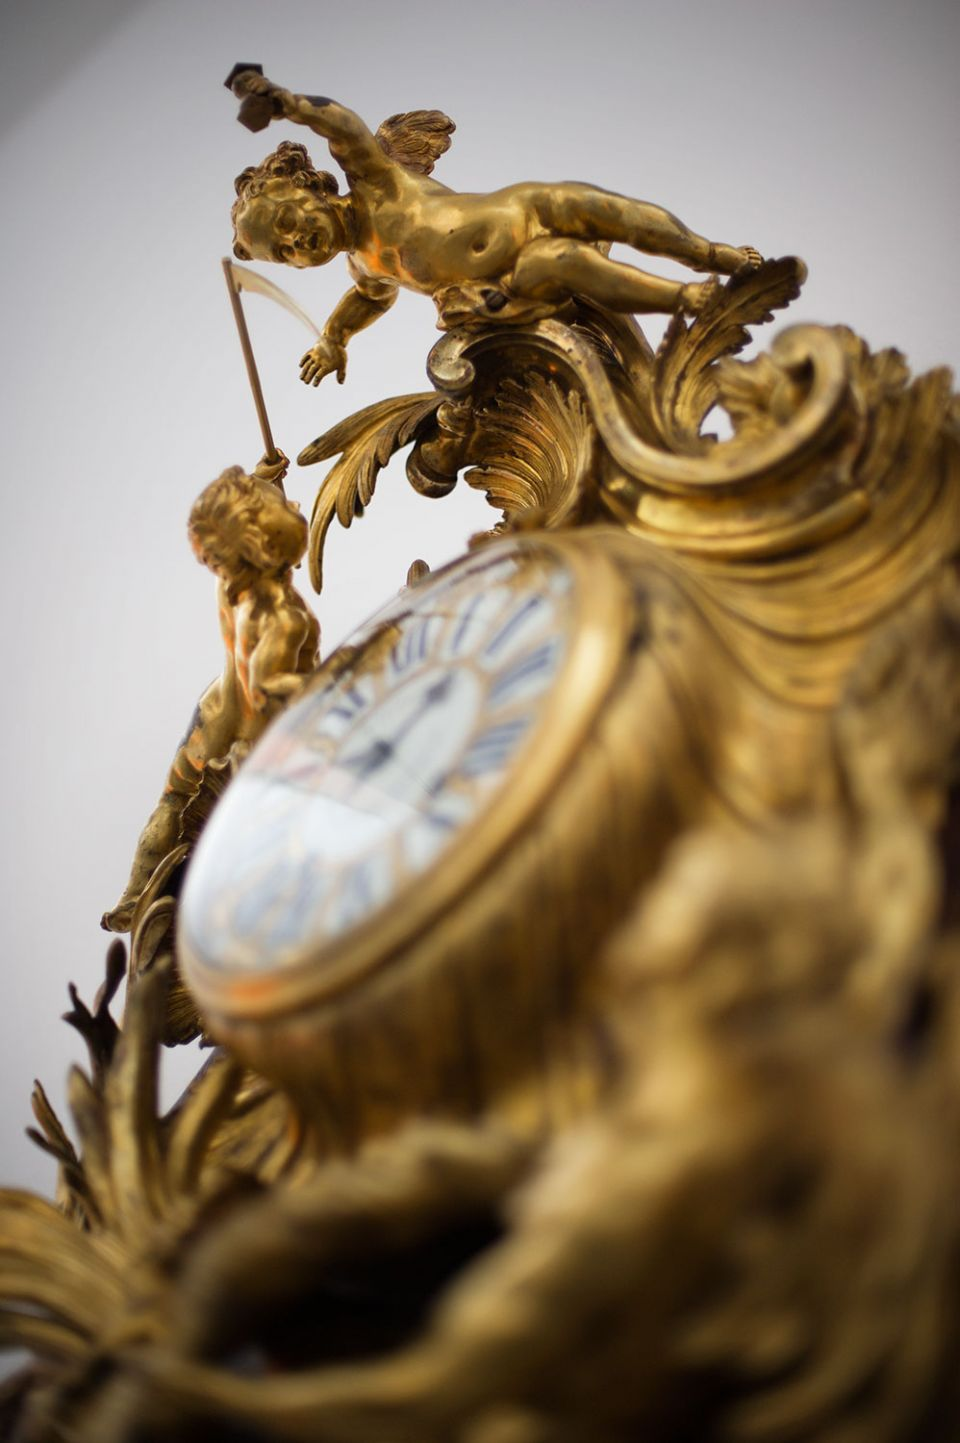 Justre-Aurèle Meissonnier, 'Wall Clock' (c. 1735-40, gilt-bronze, enamelled metal, wood carcass, glass)